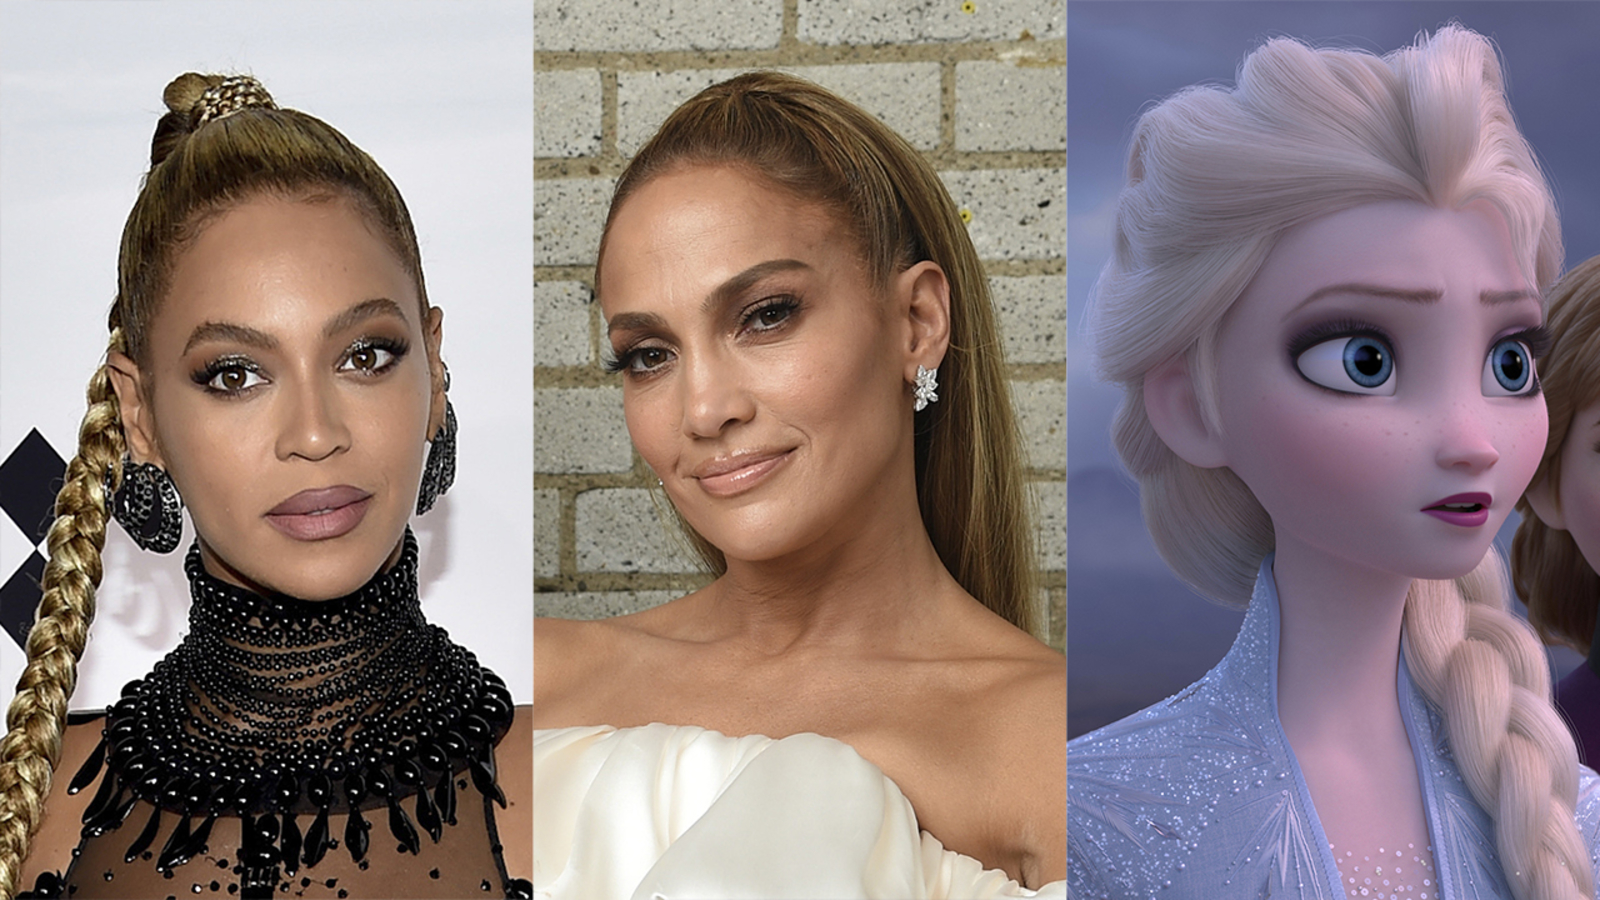 Oscar nomination 2020 surprises: No Beyoncé, J.Lo, Frozen 2